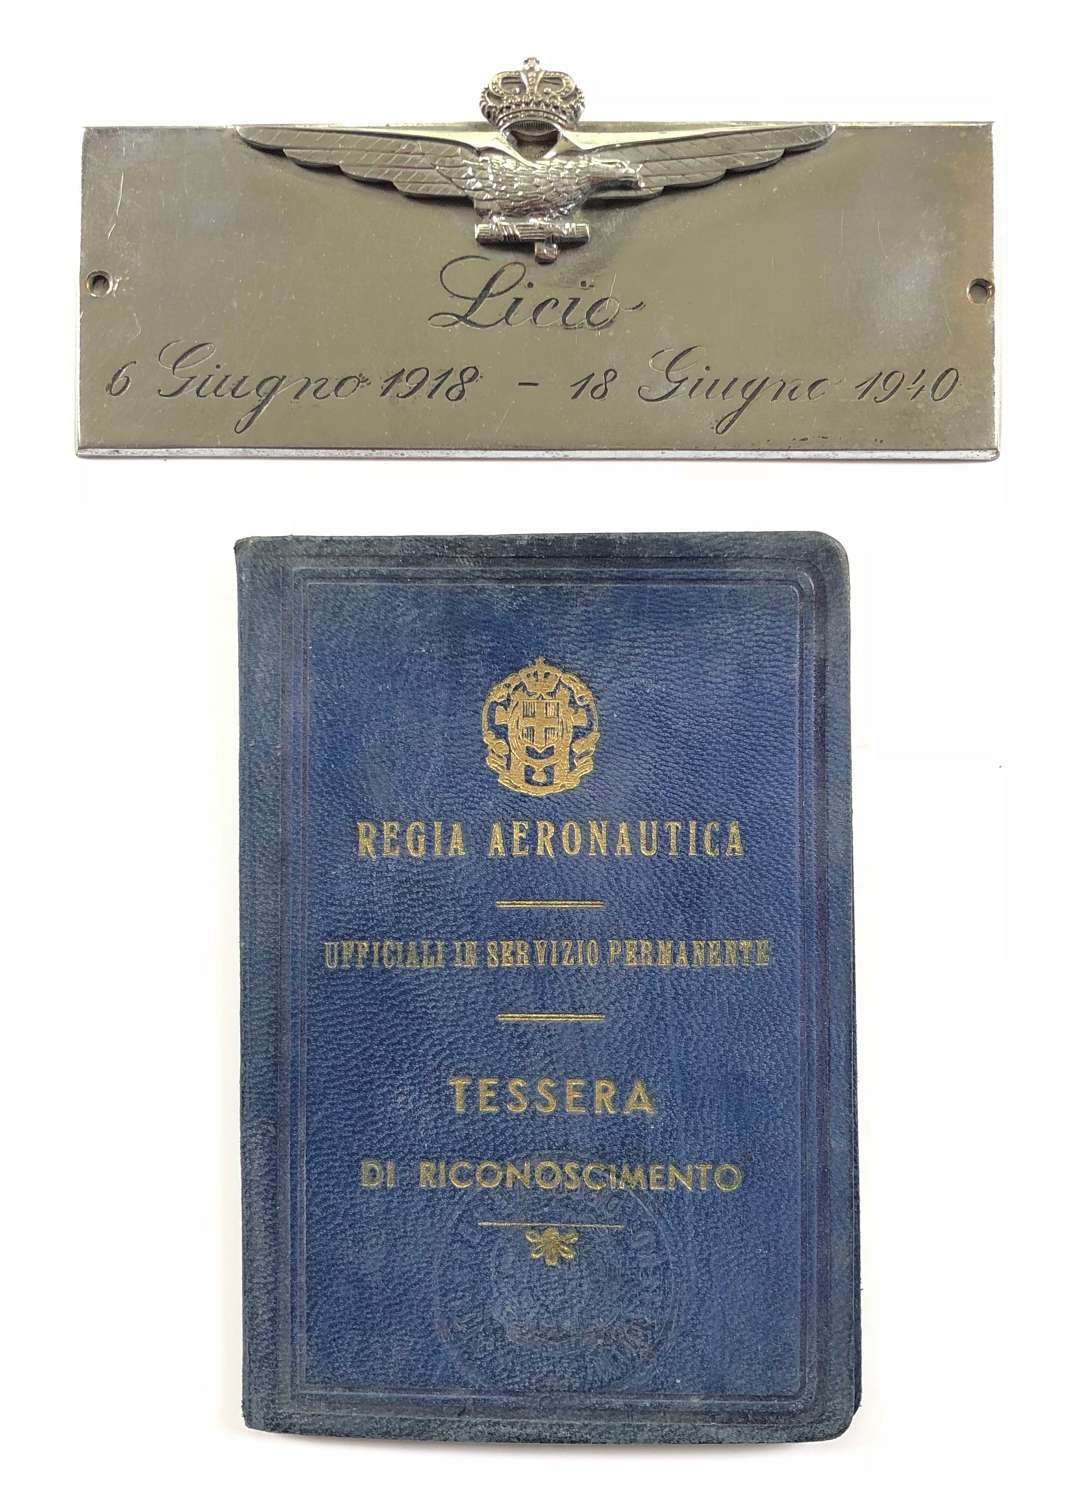 WW2 Italian Air Force Officer's ID Booklet and Plaque.